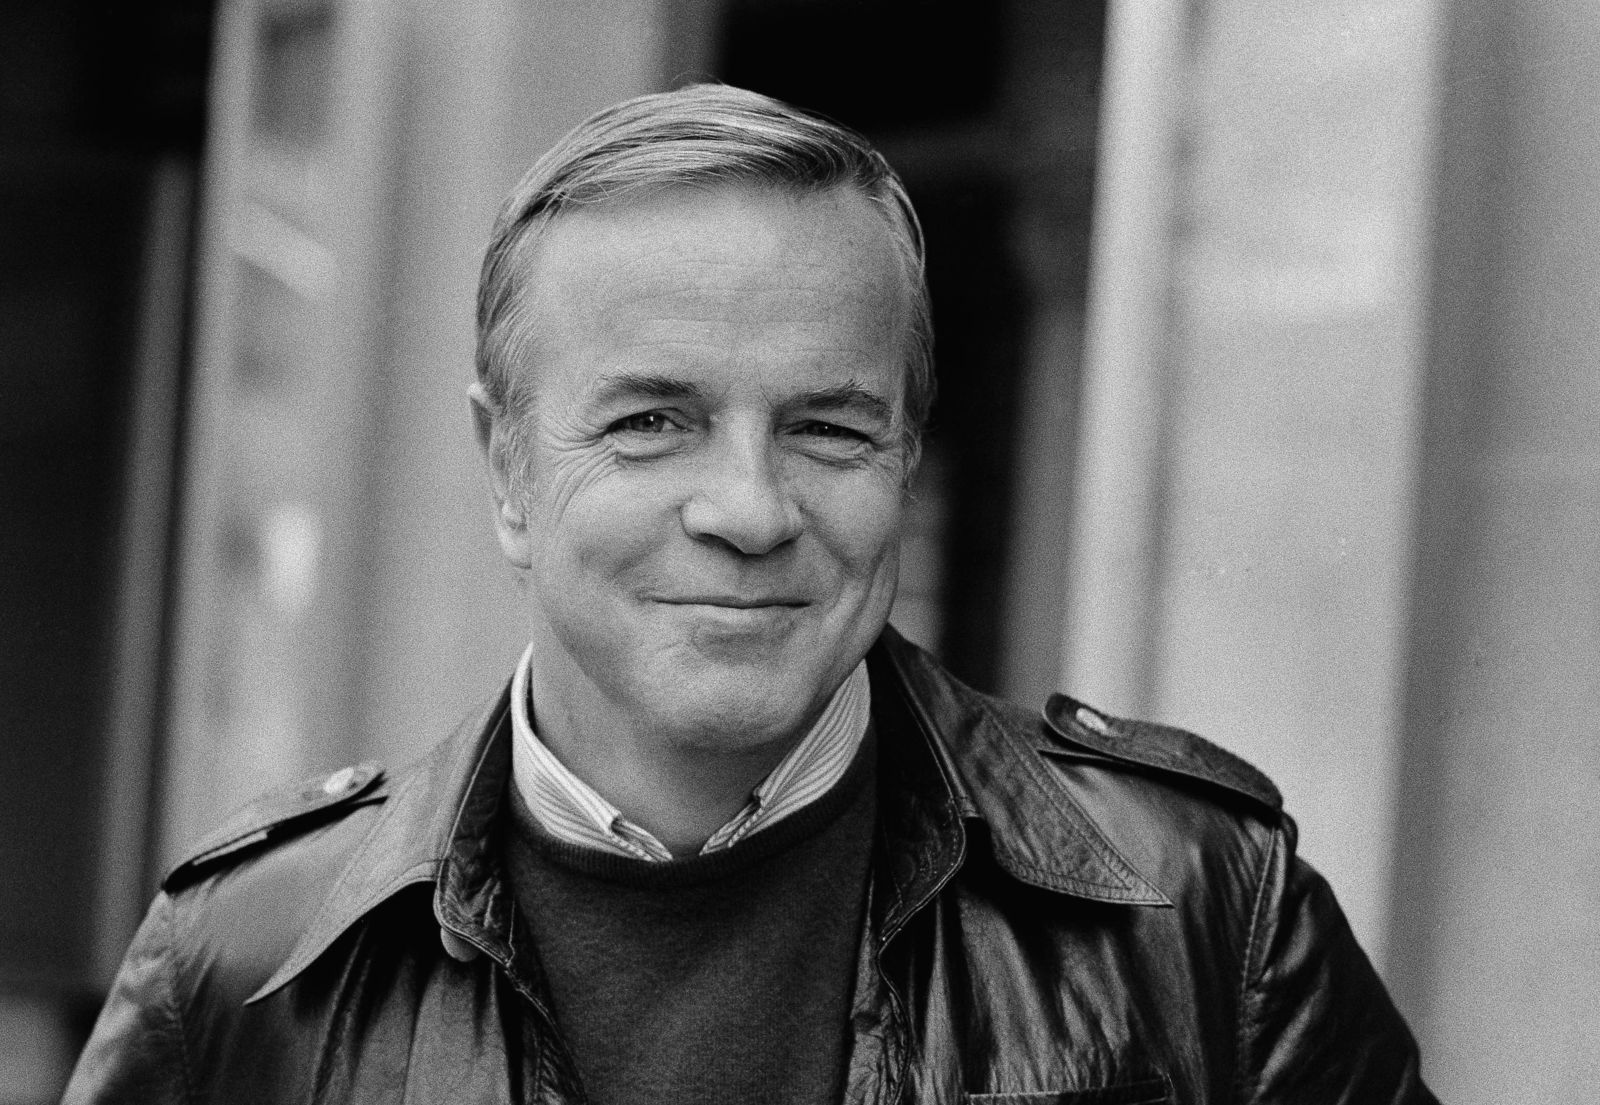 FILE - Franco Zeffirelli, seen in New York, in this Oct. 31, 1974 file photo.(AP Photo/Jerry Mosey, File)